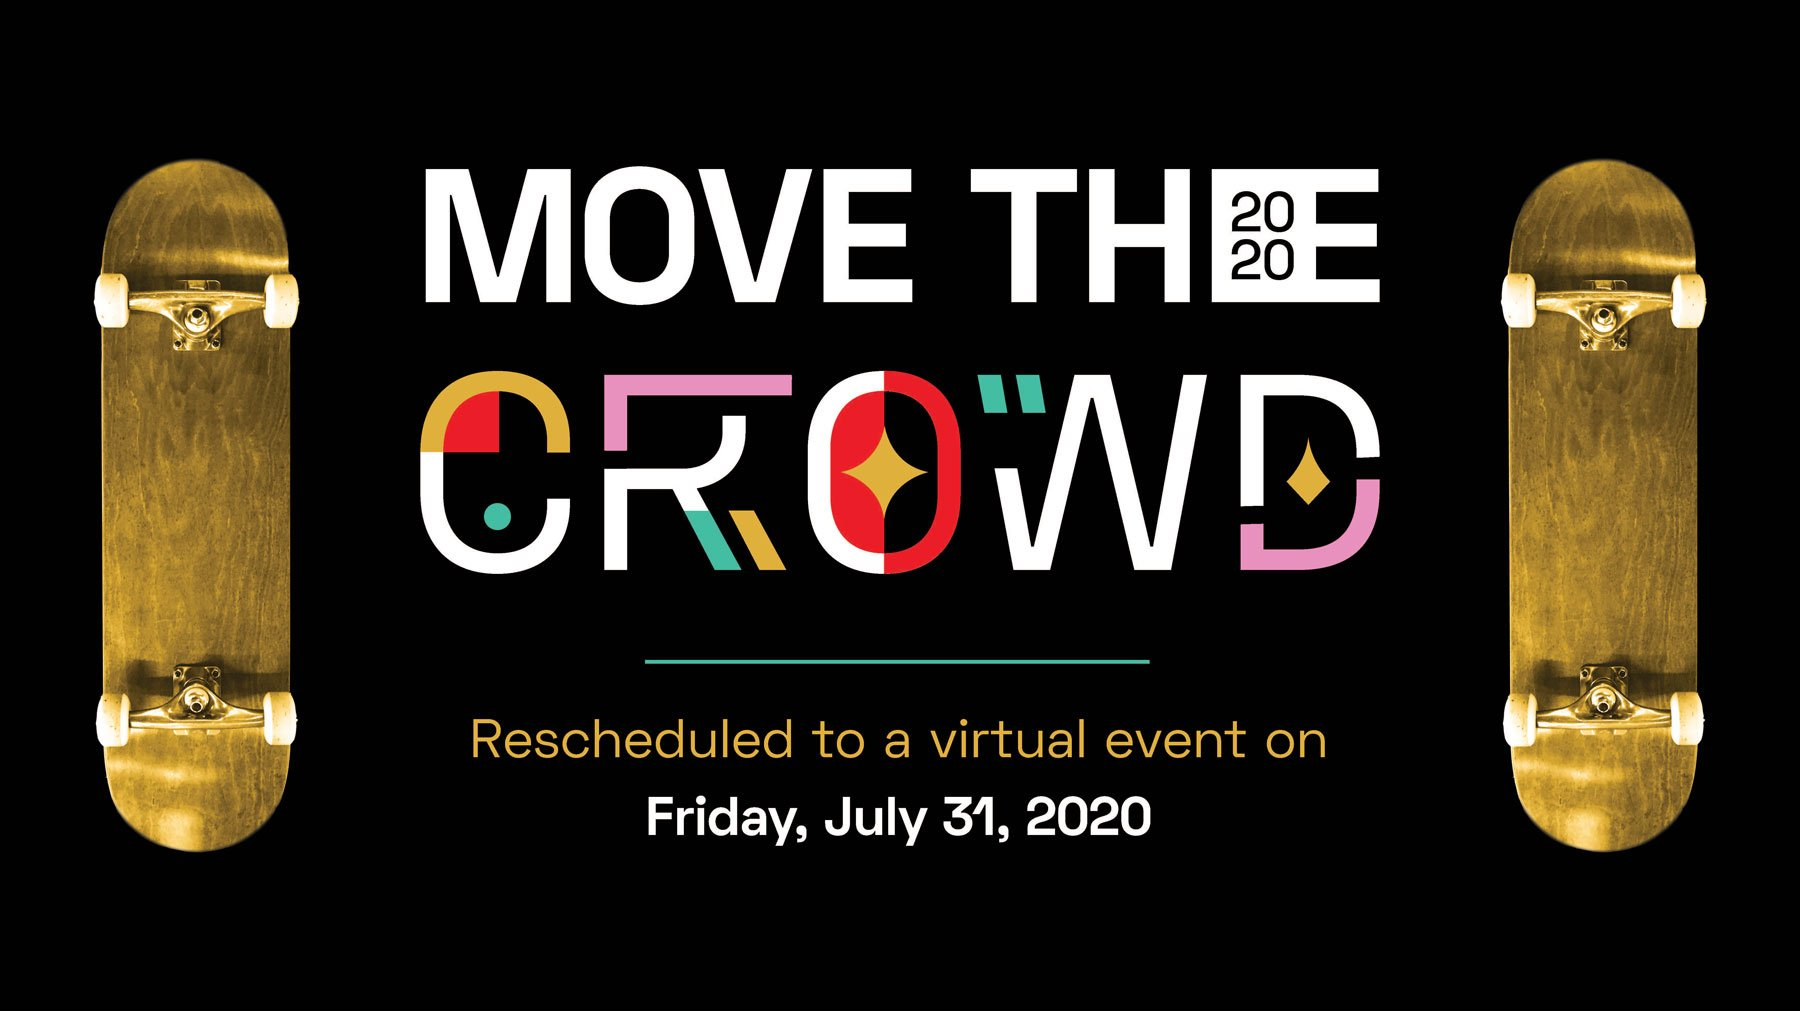 Move the Crowd 2020 rescheduled to a virtual event on July 31 2020